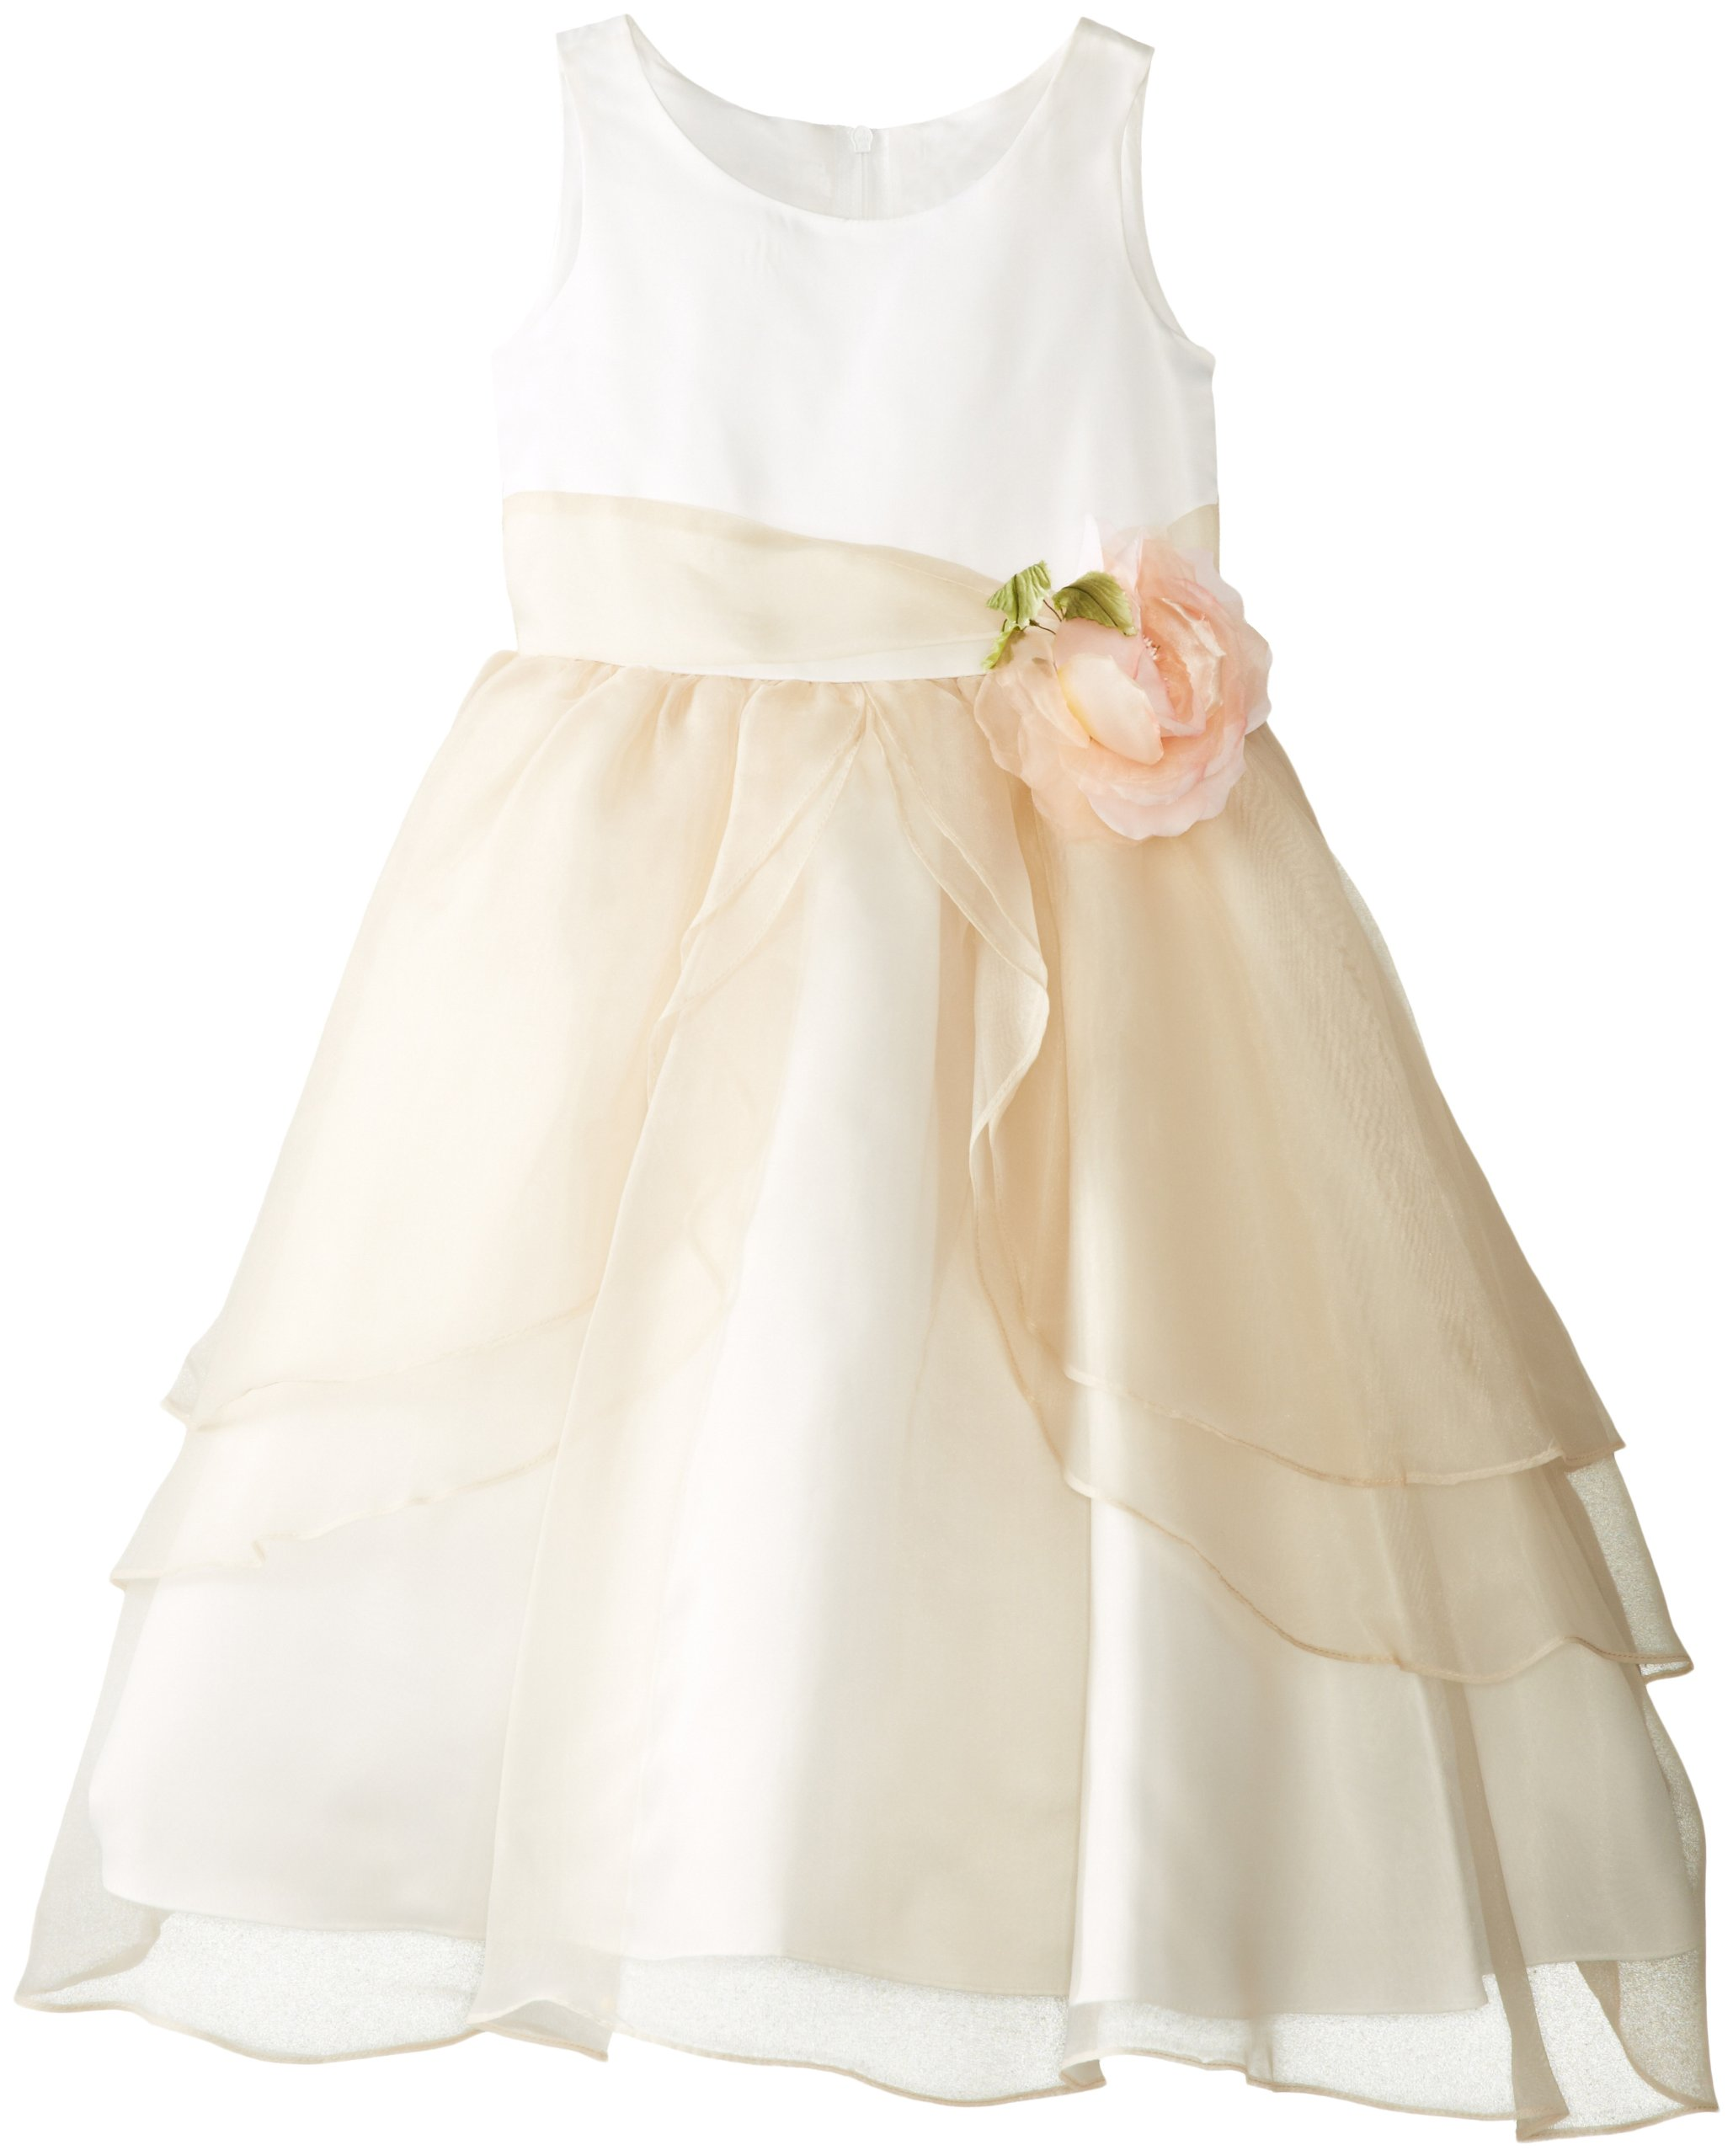 Us Angels Little Girls' Tank Dress with Layers of Organza Skirt, Ivory/Champagne, 4 by US Angels